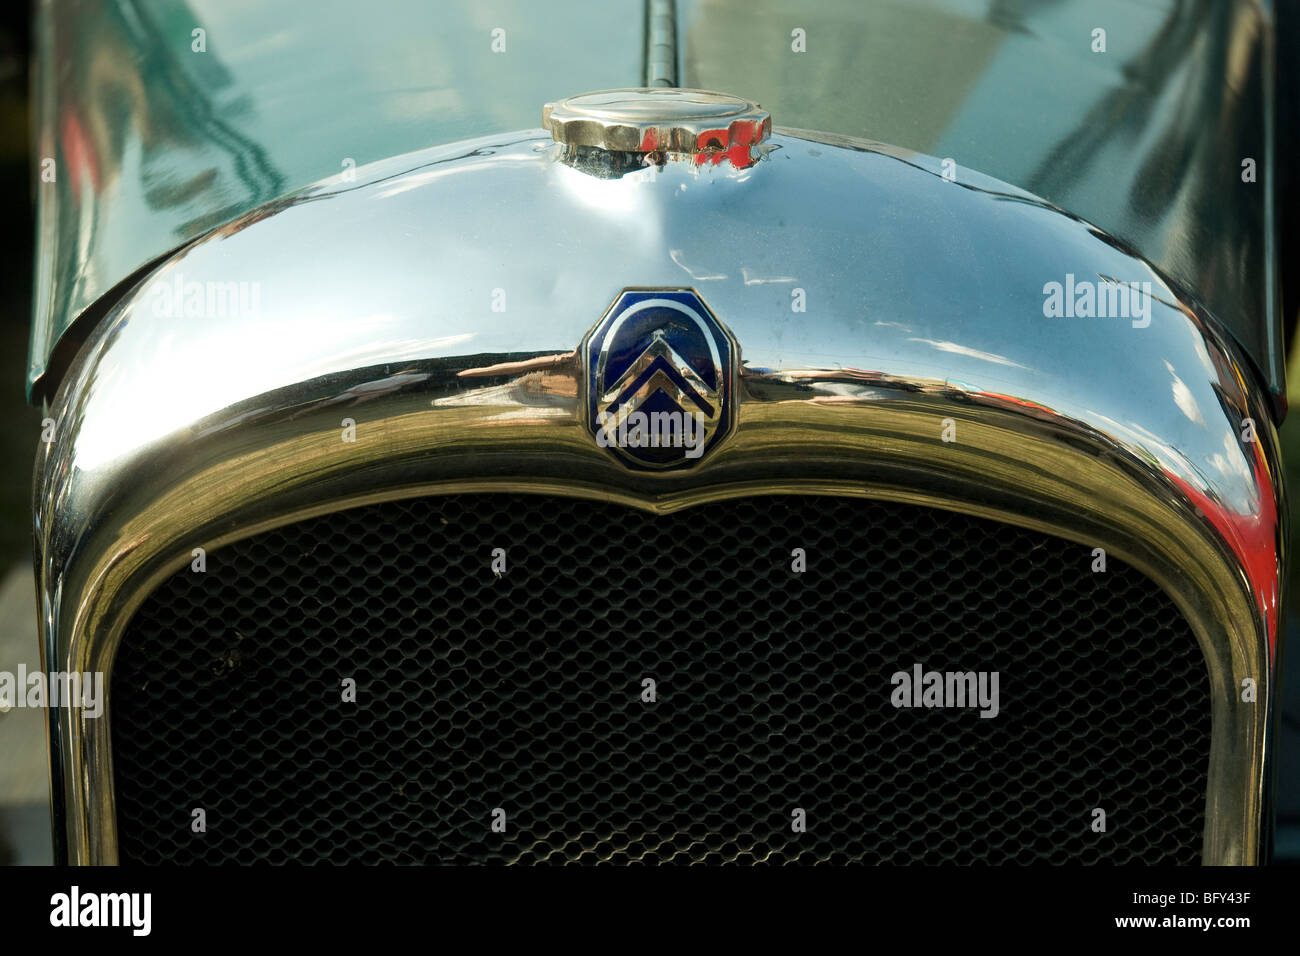 A gleaming vintage Citroen car from the 1920s displayed at the Gascogne Expo fair in Auch - Stock Image